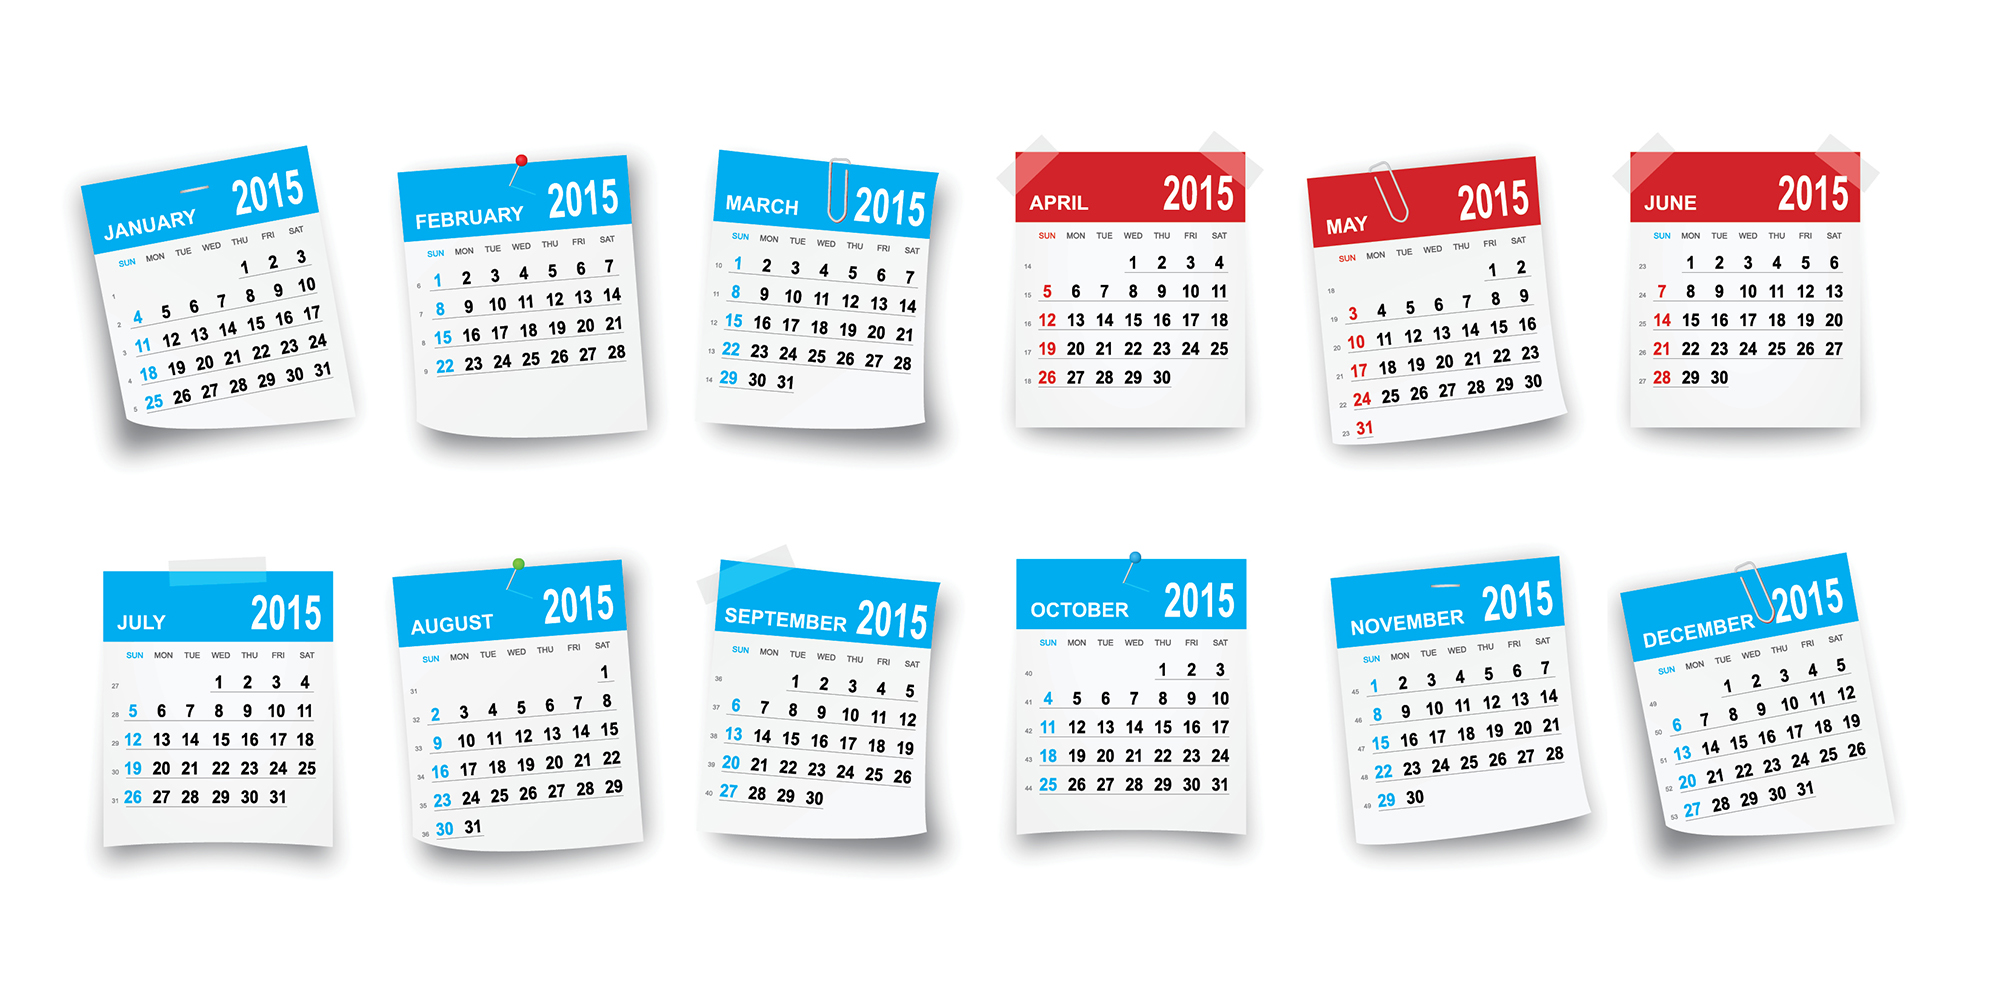 2015 Popular Selling Months | Simplifying The Market